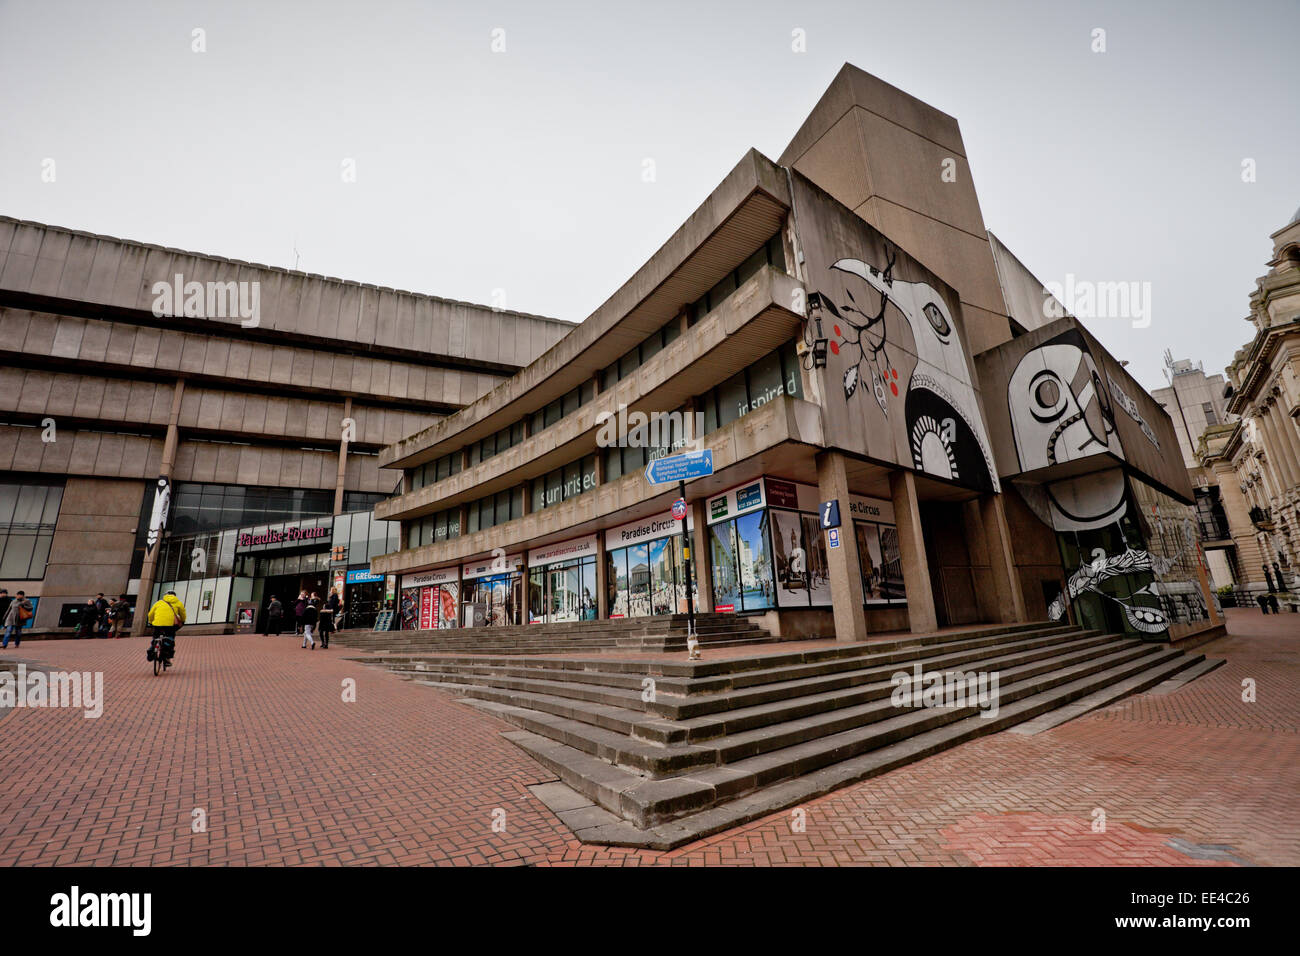 Buildings in Paradise Circus, Birmingham UK which are being demolished in January 2015 to make way for redevelopment. - Stock Image